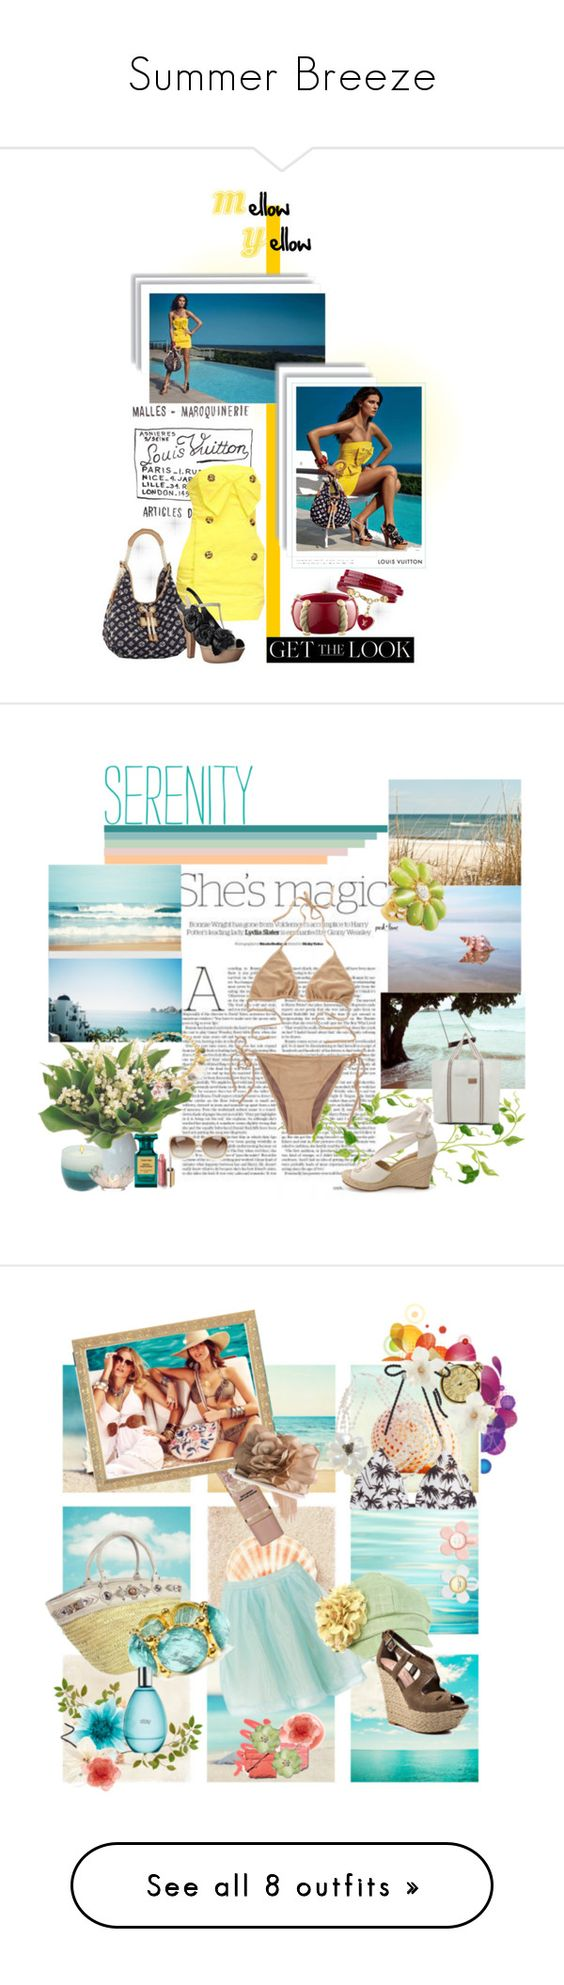 """Summer Breeze"" by scandalicious ❤ liked on Polyvore featuring Louis Vuitton, get the look louis vuitton summer 2010 louis vuitton women sandals, Nicole, Sonoma life + style, Tom Ford, Dolce&Gabbana, BUBA, Glam Rock, Heidi Klein and Marc Jacobs"